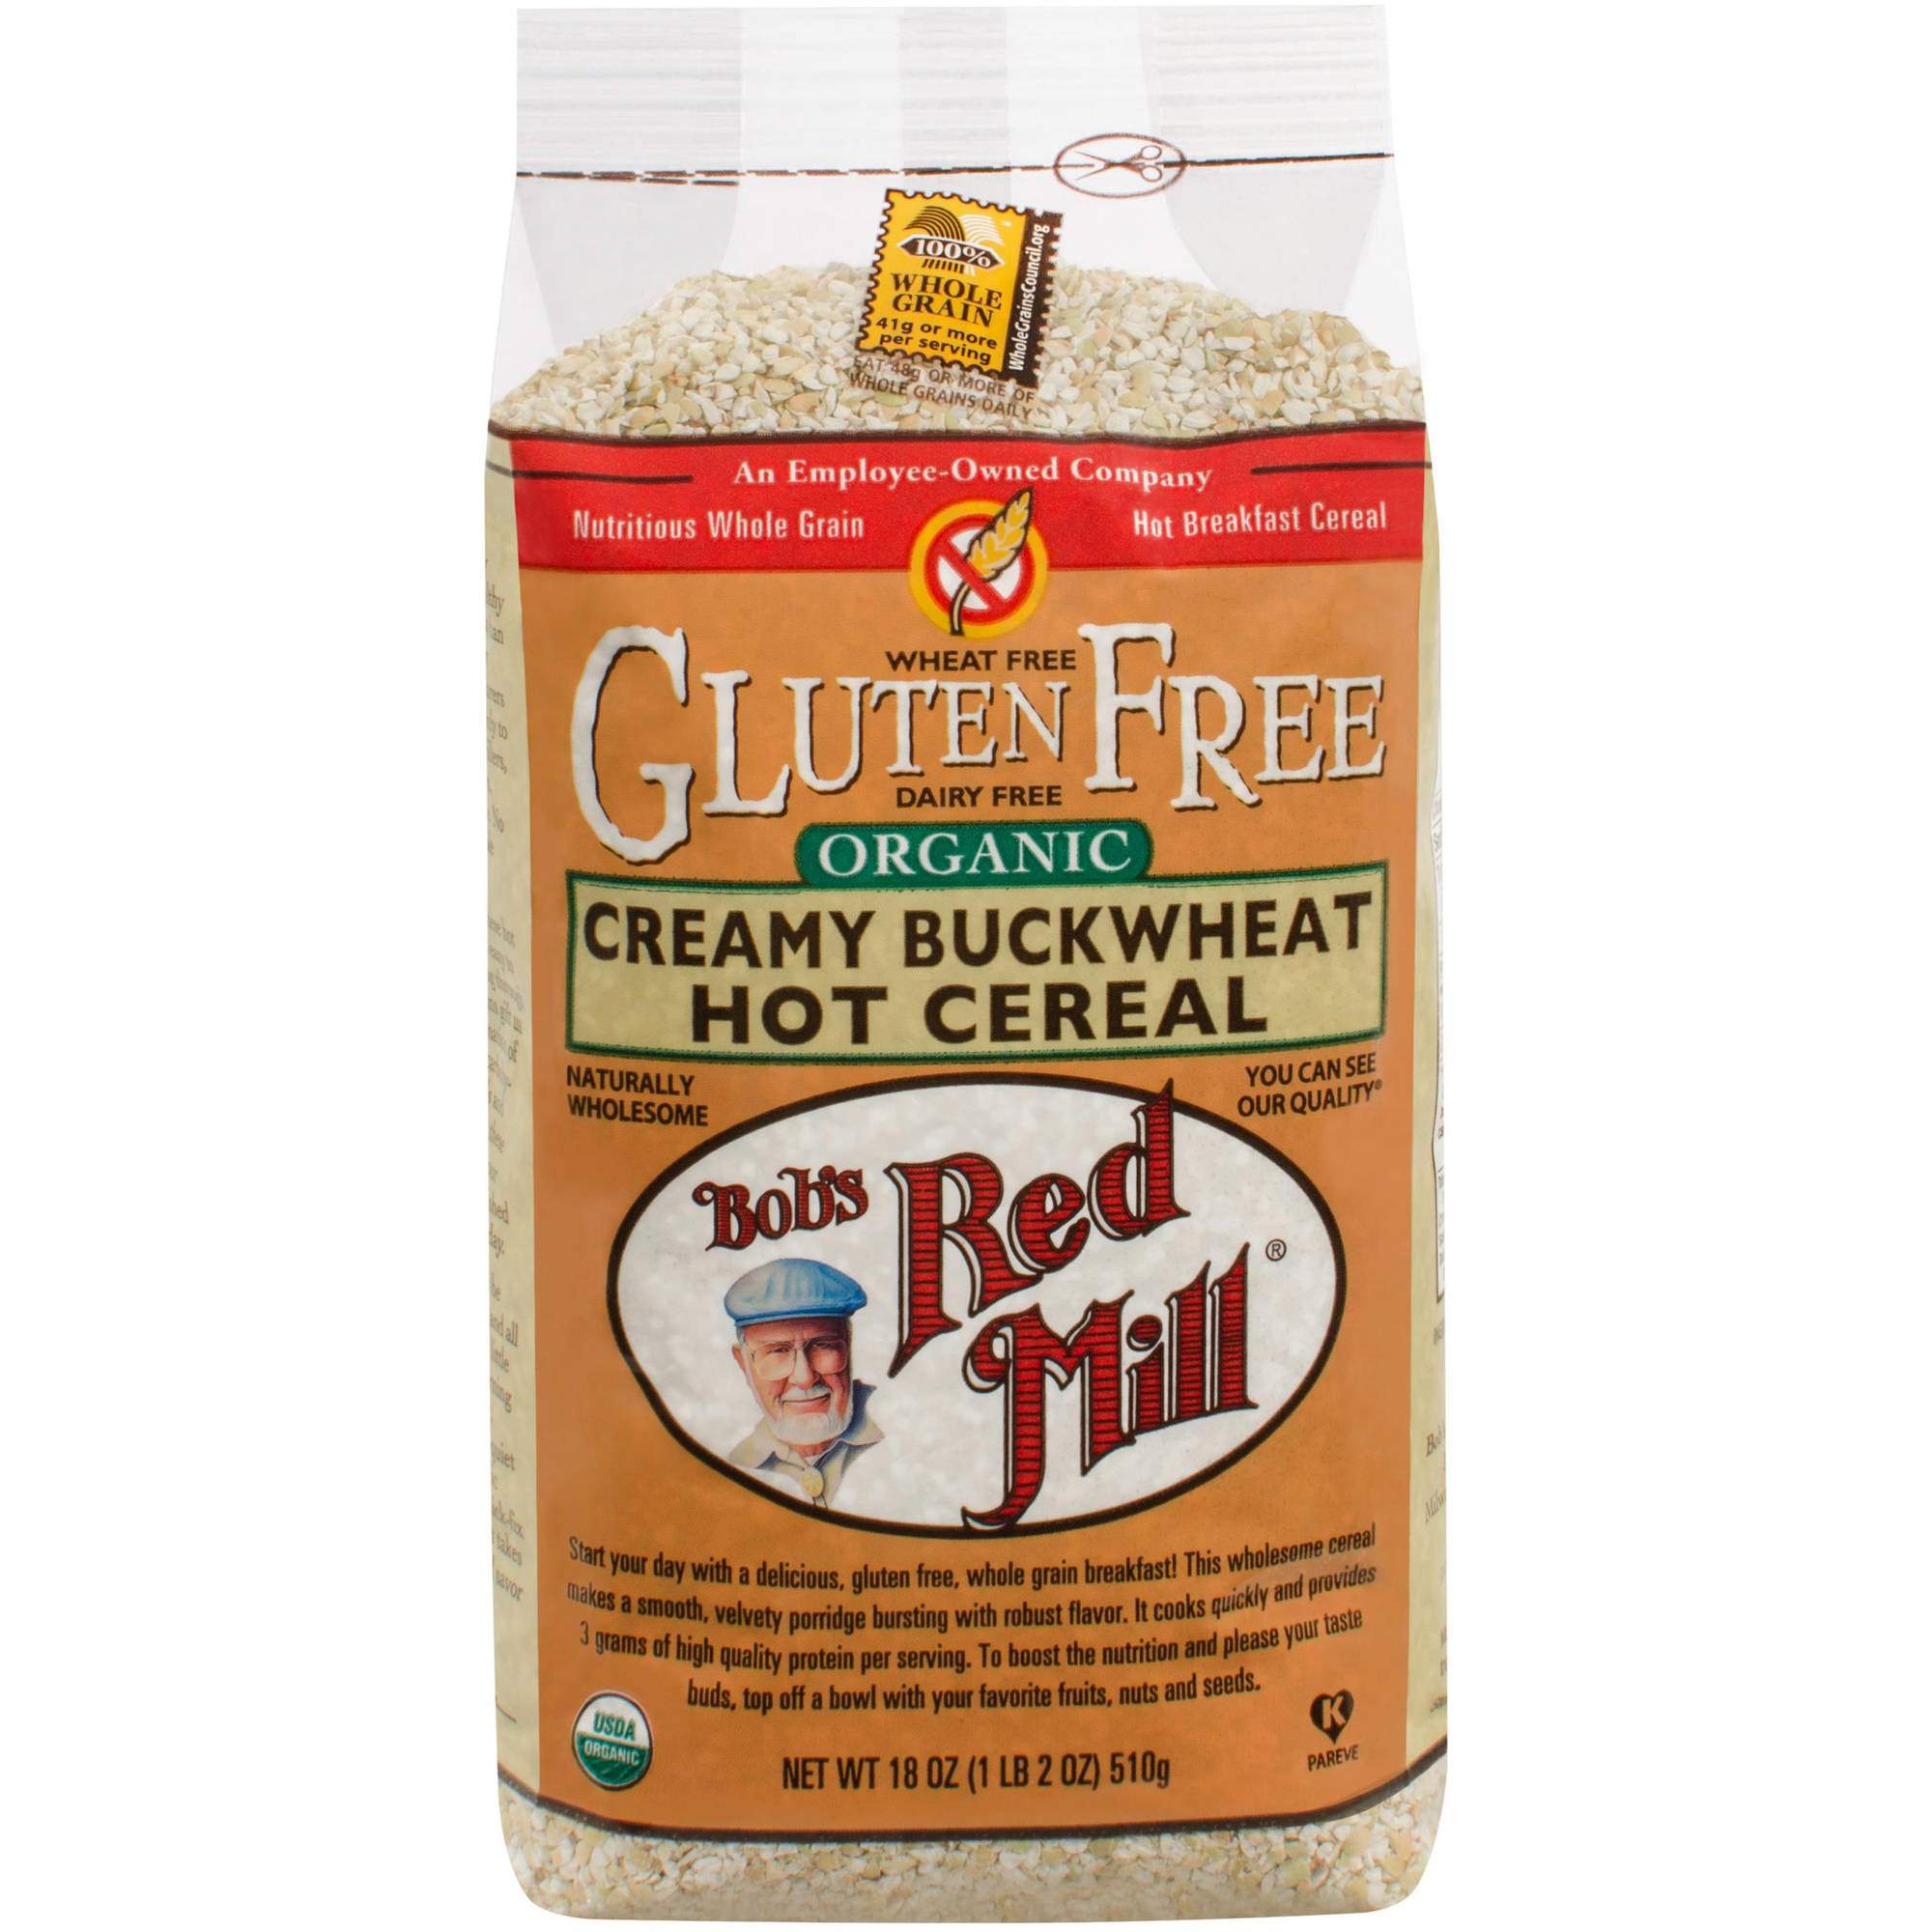 Bob's Red Mill Organic Whole Grain Creamy Buckwheat Hot Cereal, 18 oz (Pack of 4)